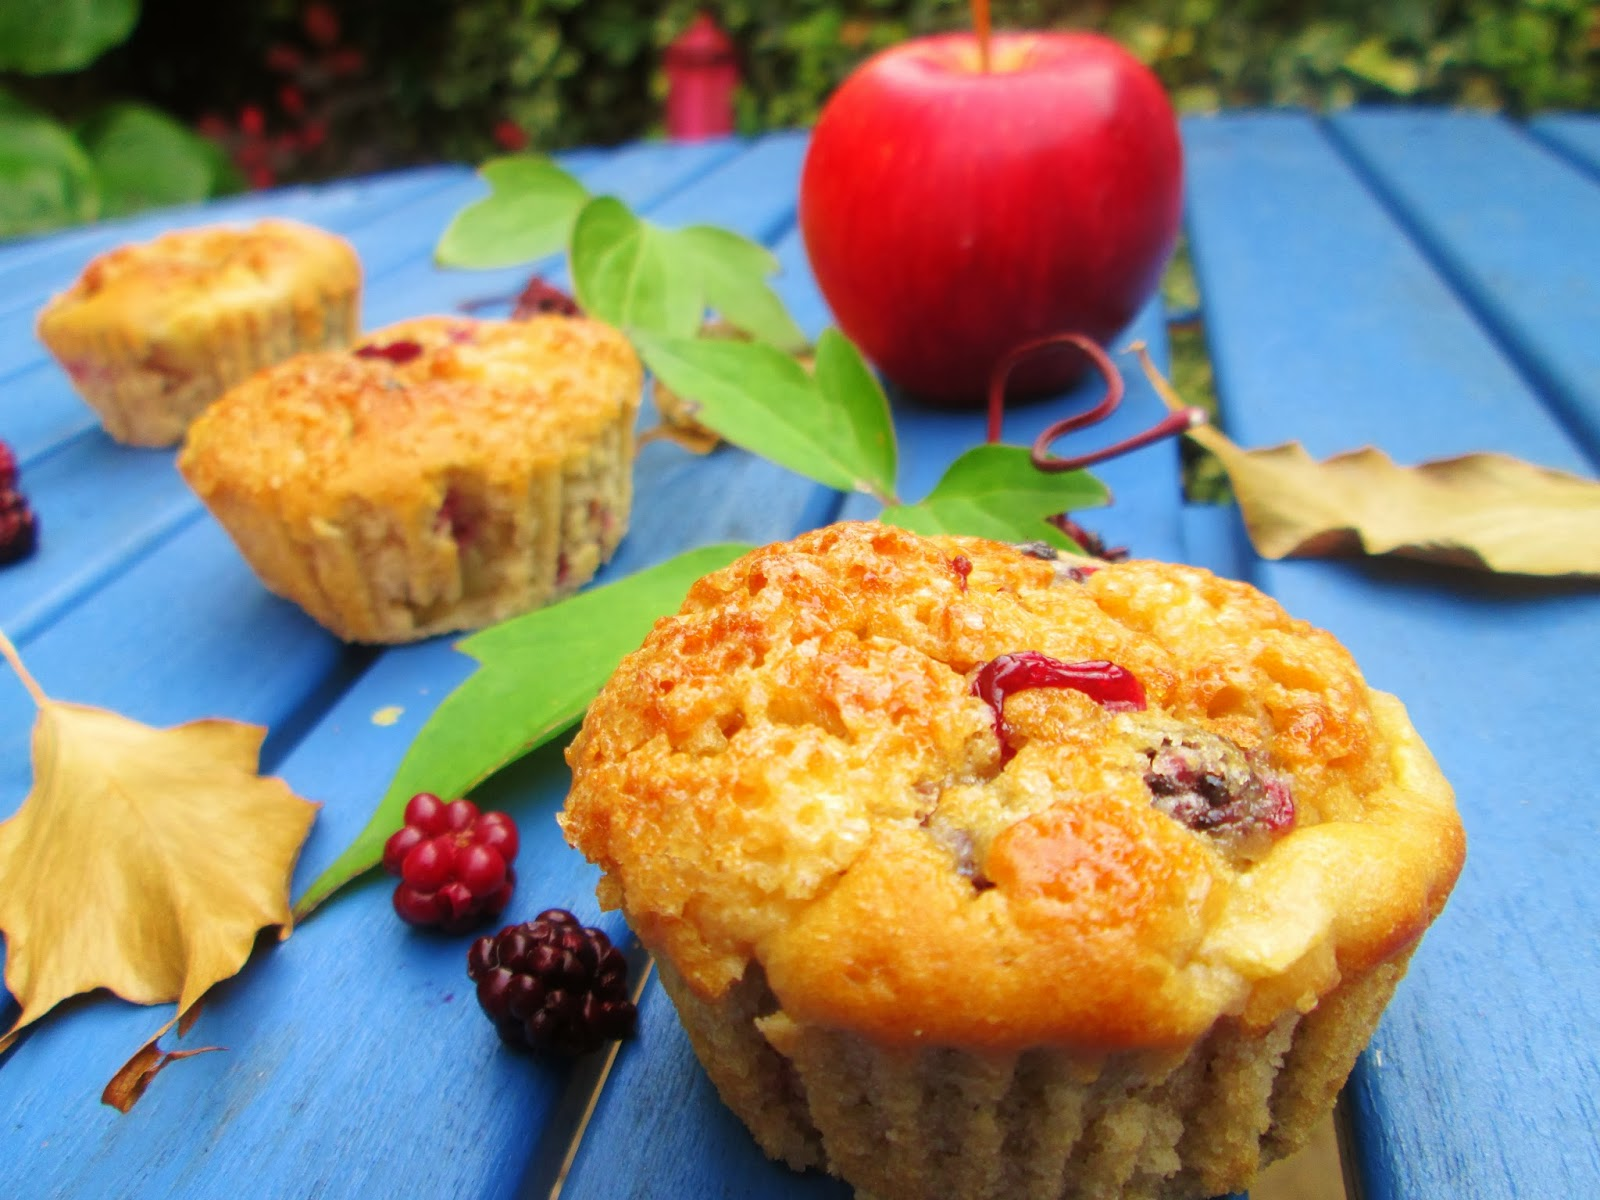 http://themessykitchenuk.blogspot.co.uk/2013/09/apple-blackberry-muffins.html